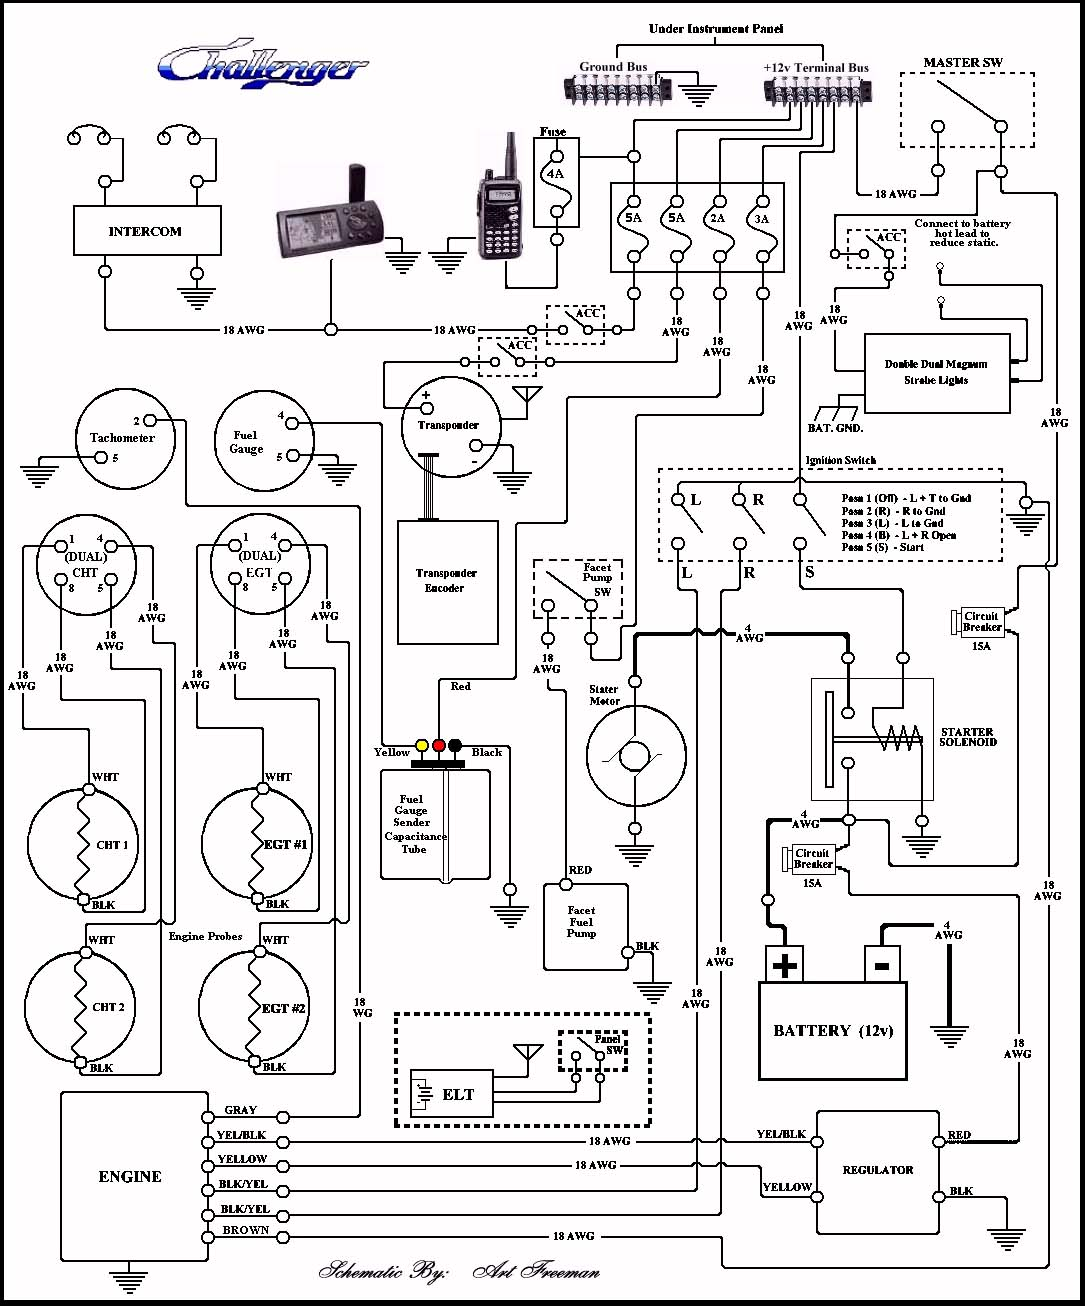 Schem_Analog basic wiring of fuselage, instruments and power source aircraft ignition switch wiring diagram at readyjetset.co